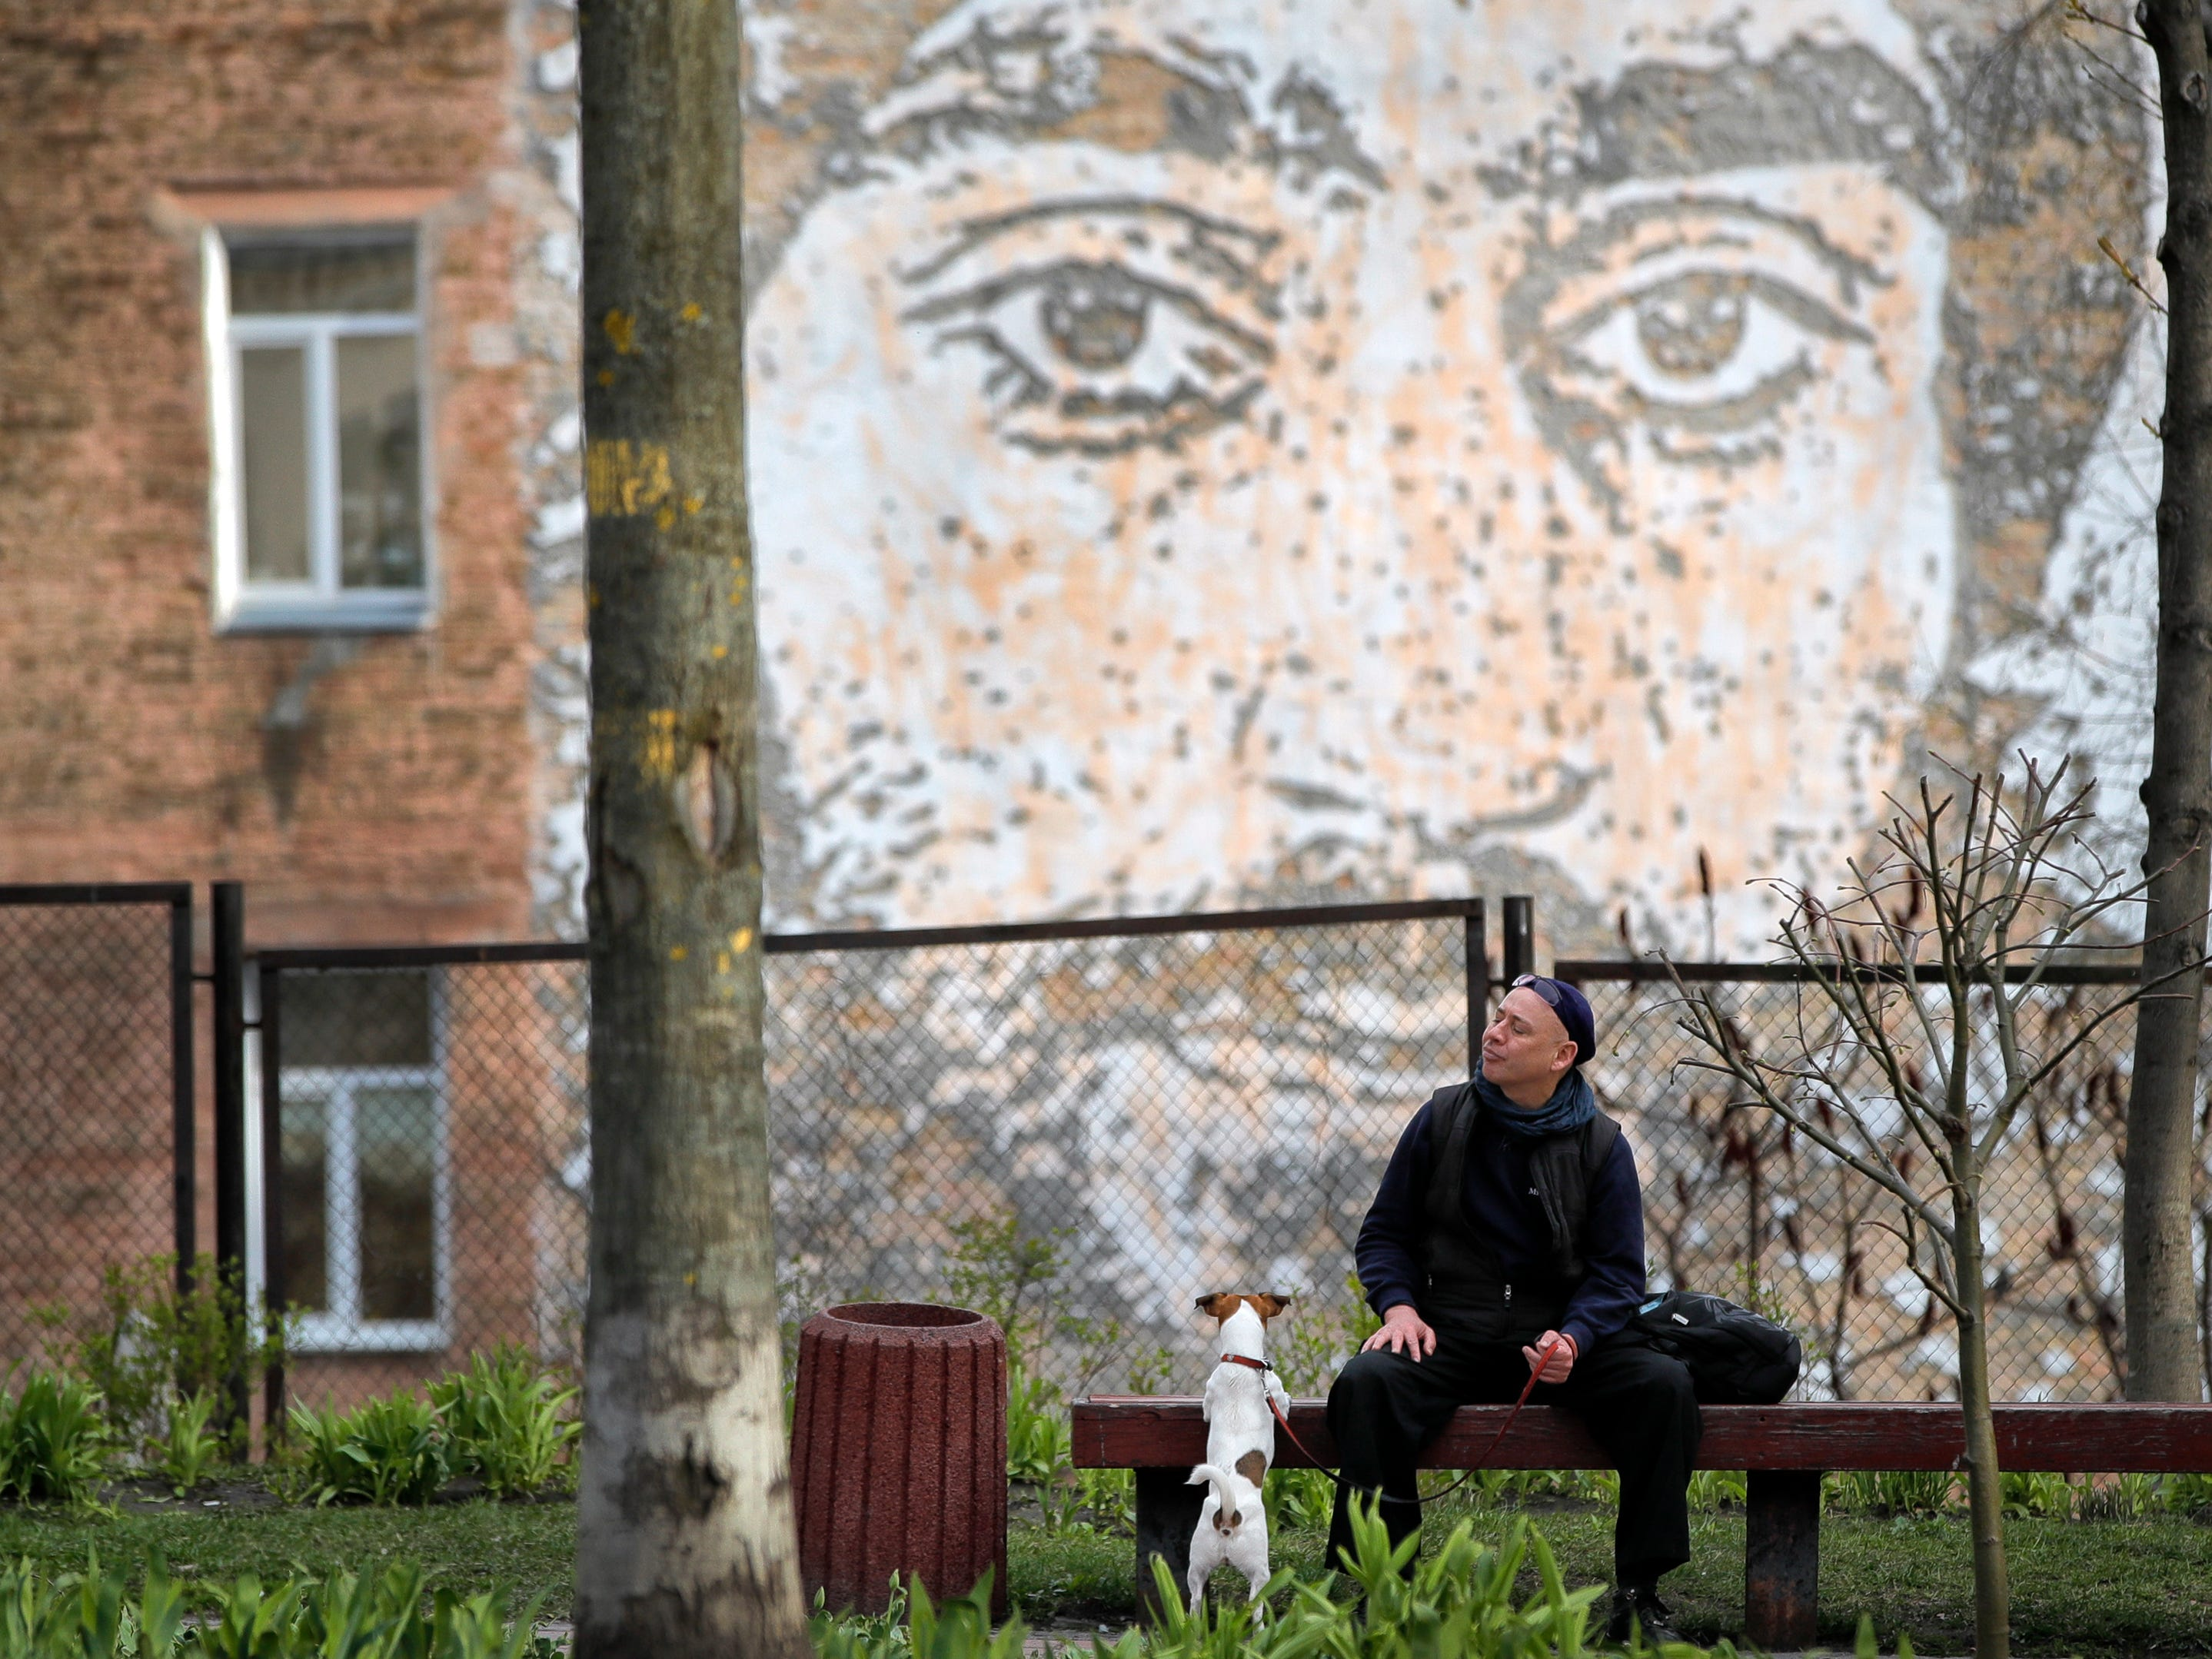 A man walking a small dog pauses on a bench in Kiev, Ukraine, Thursday, April 18, 2019. The second round of presidential vote in Ukraine will take place on April 21.